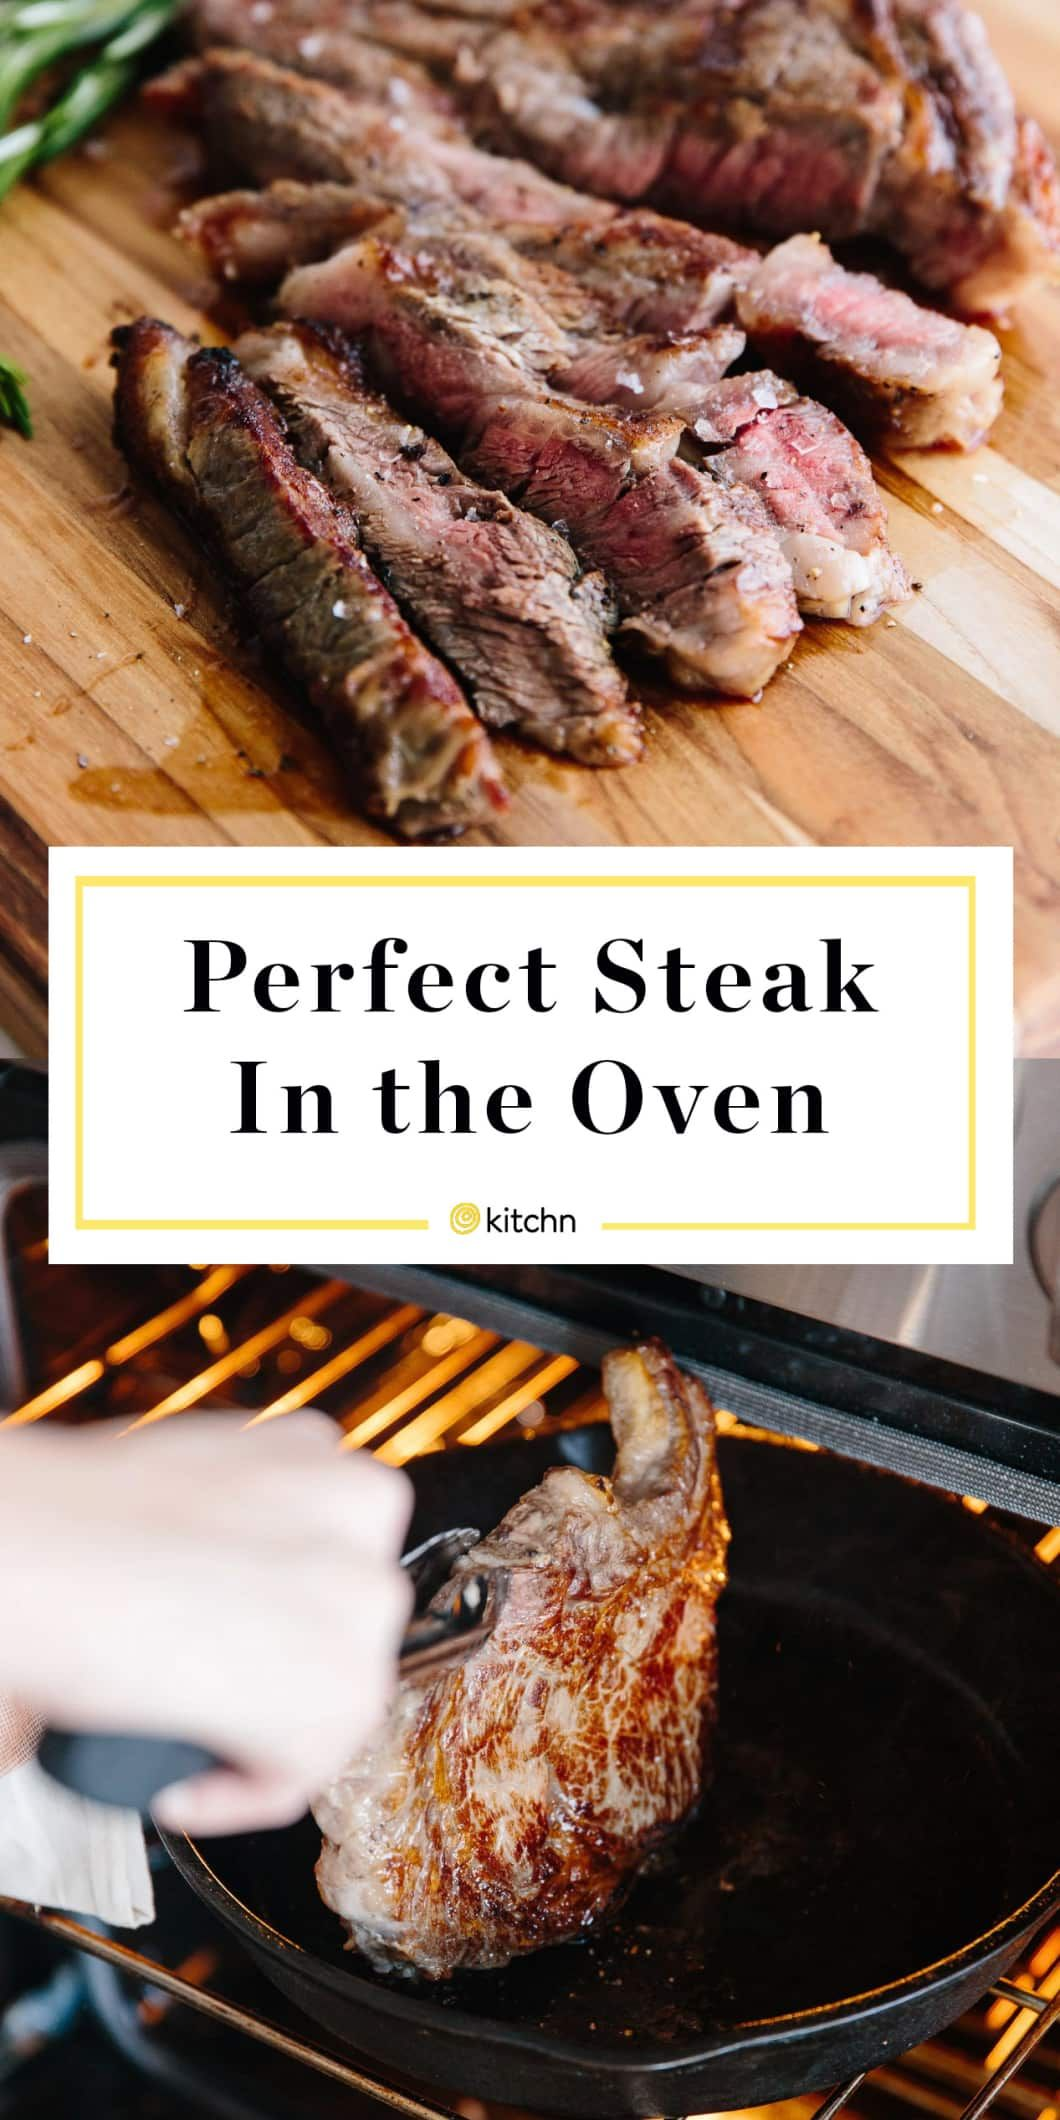 How to cook perfect steak in the oven recipe oven